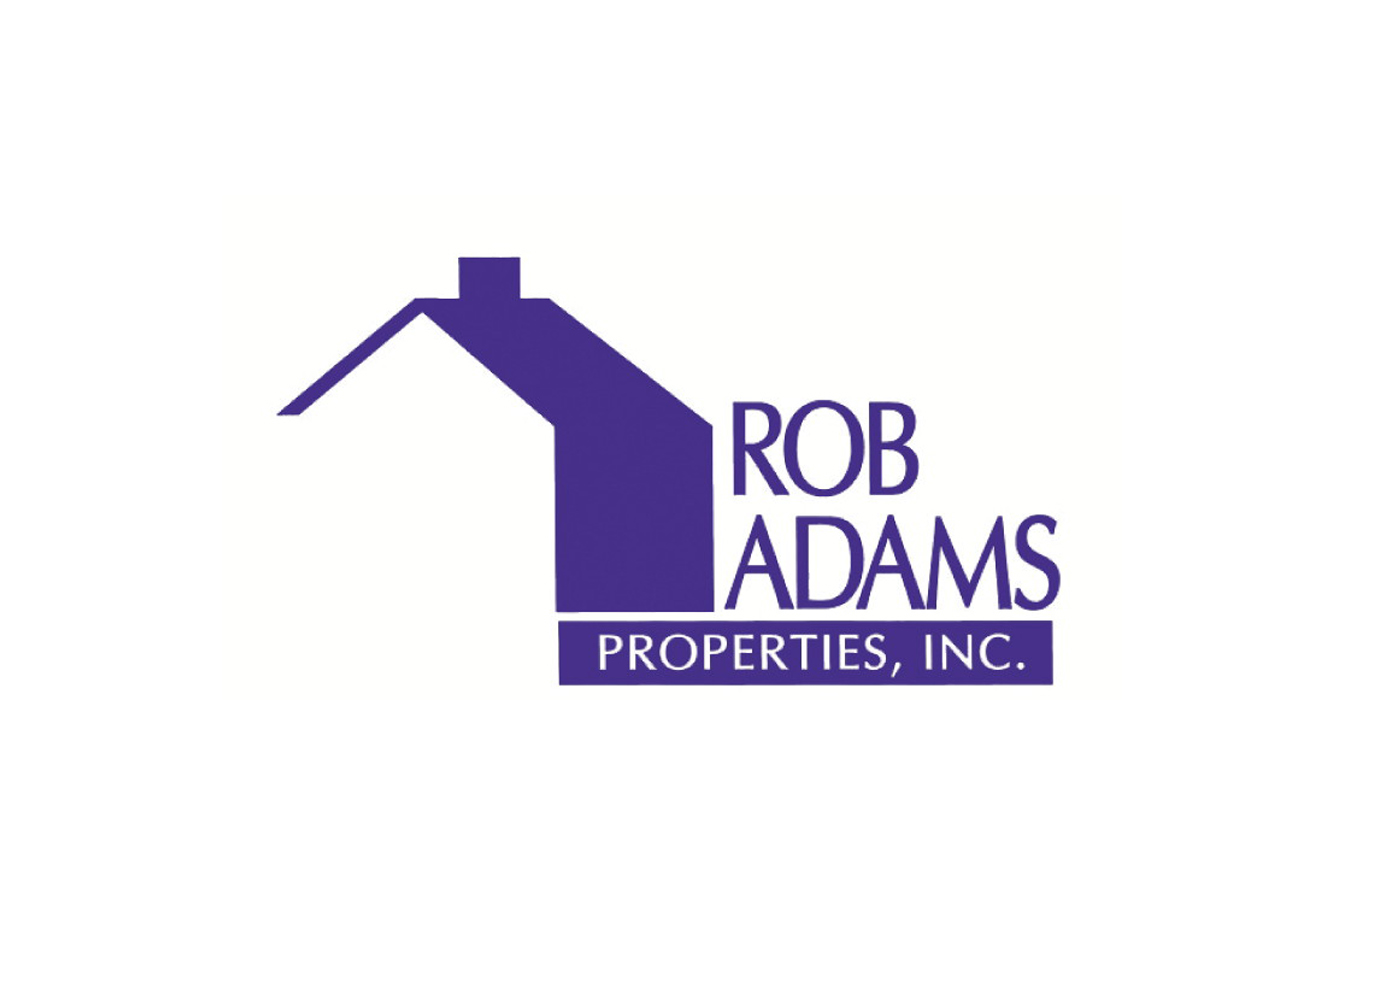 Rob Adams Properties, Inc.